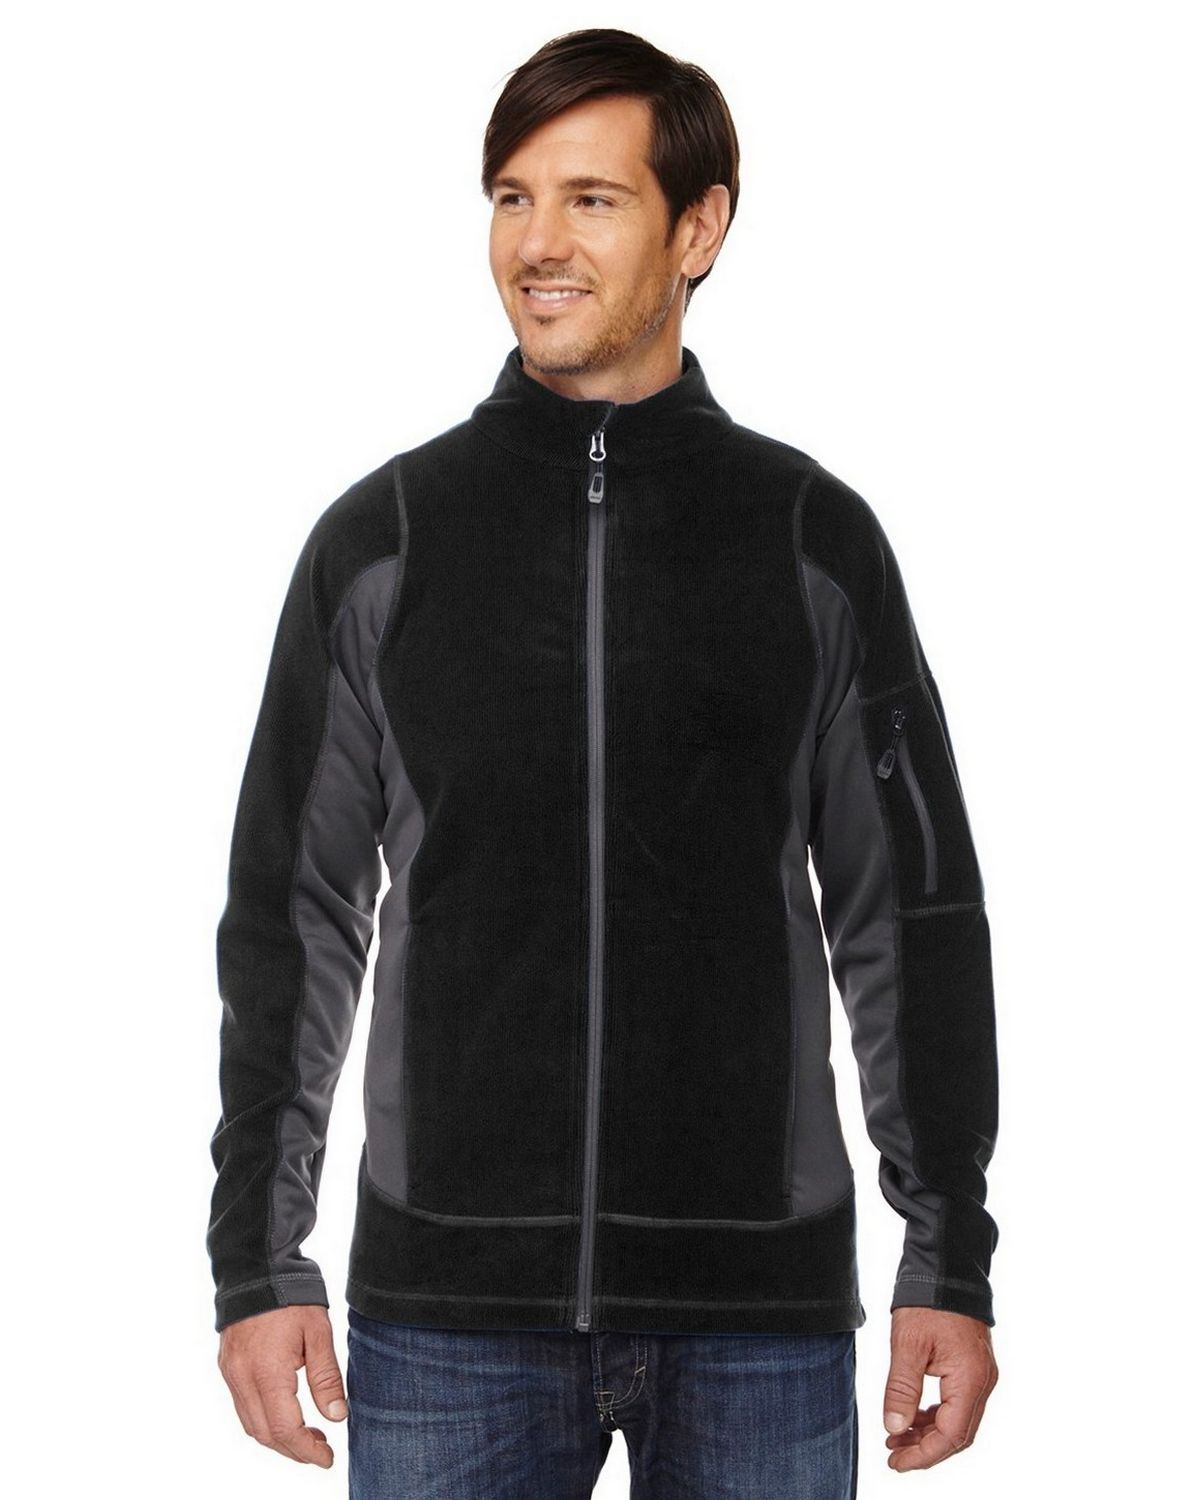 North End 88198 Generate Mens Jacket - Black - L 88198